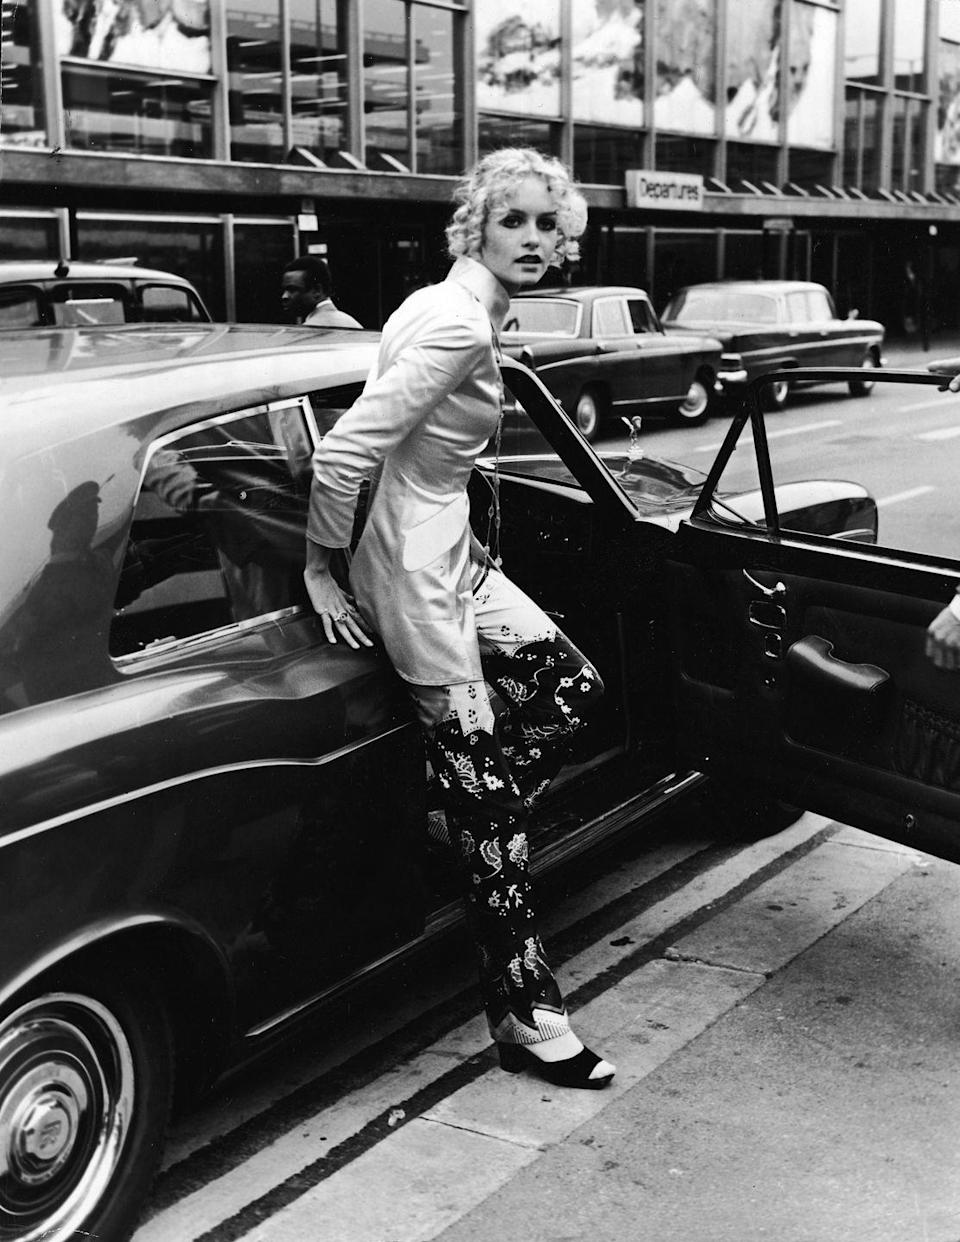 <p>Twiggy steps from a Rolls Royce car at an airport shortly after retiring from modelling, October 3, 1970.</p>